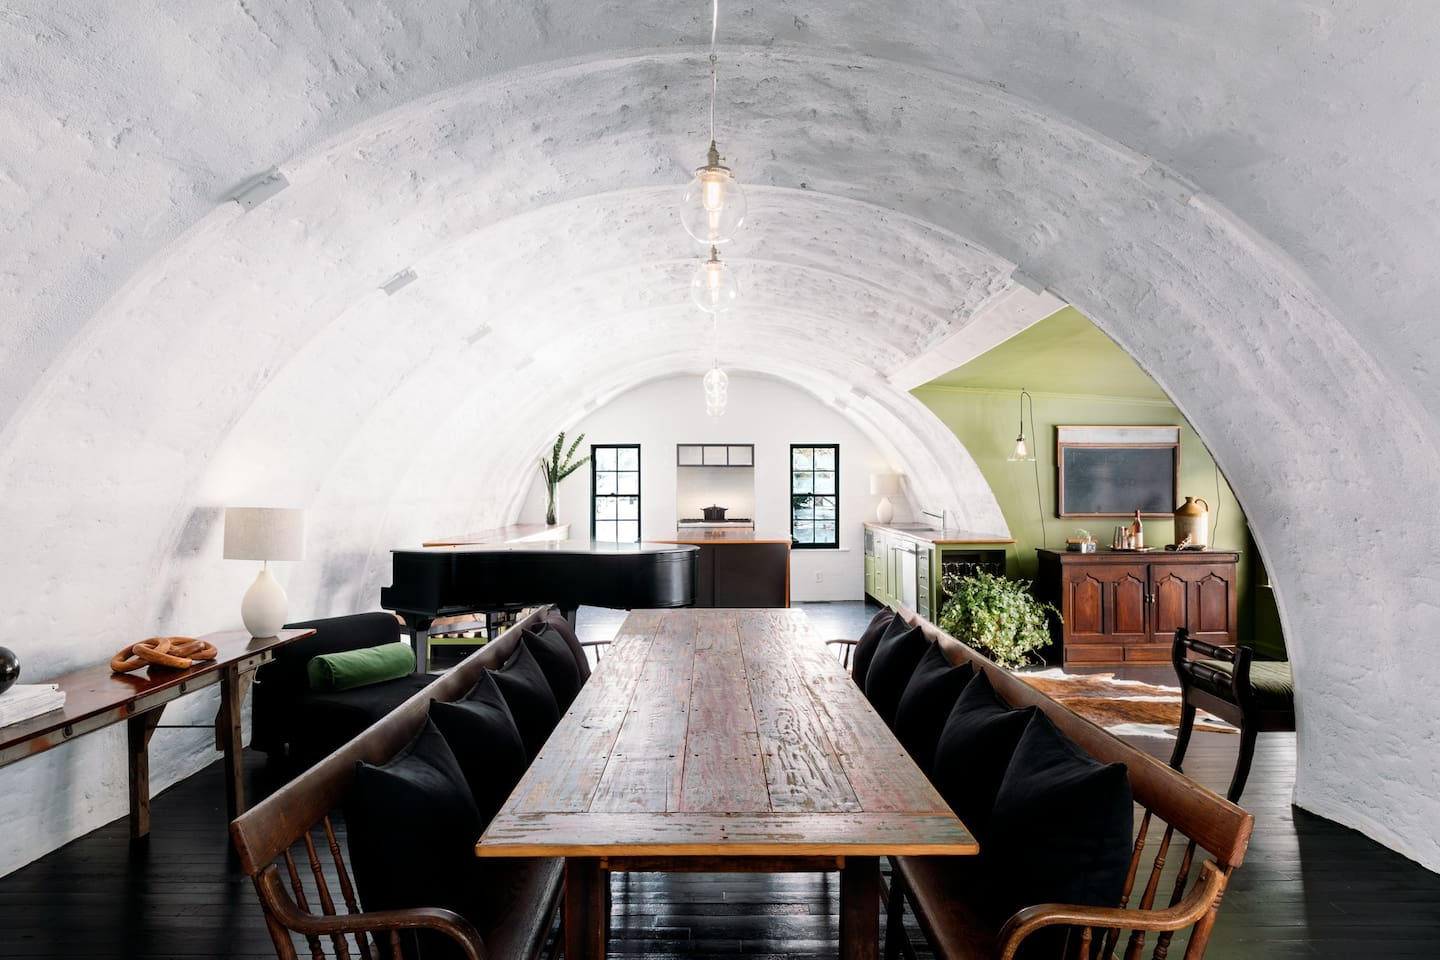 Have your stay be an experience in our unique 1900's Quonset Hut 1 mile to the beach